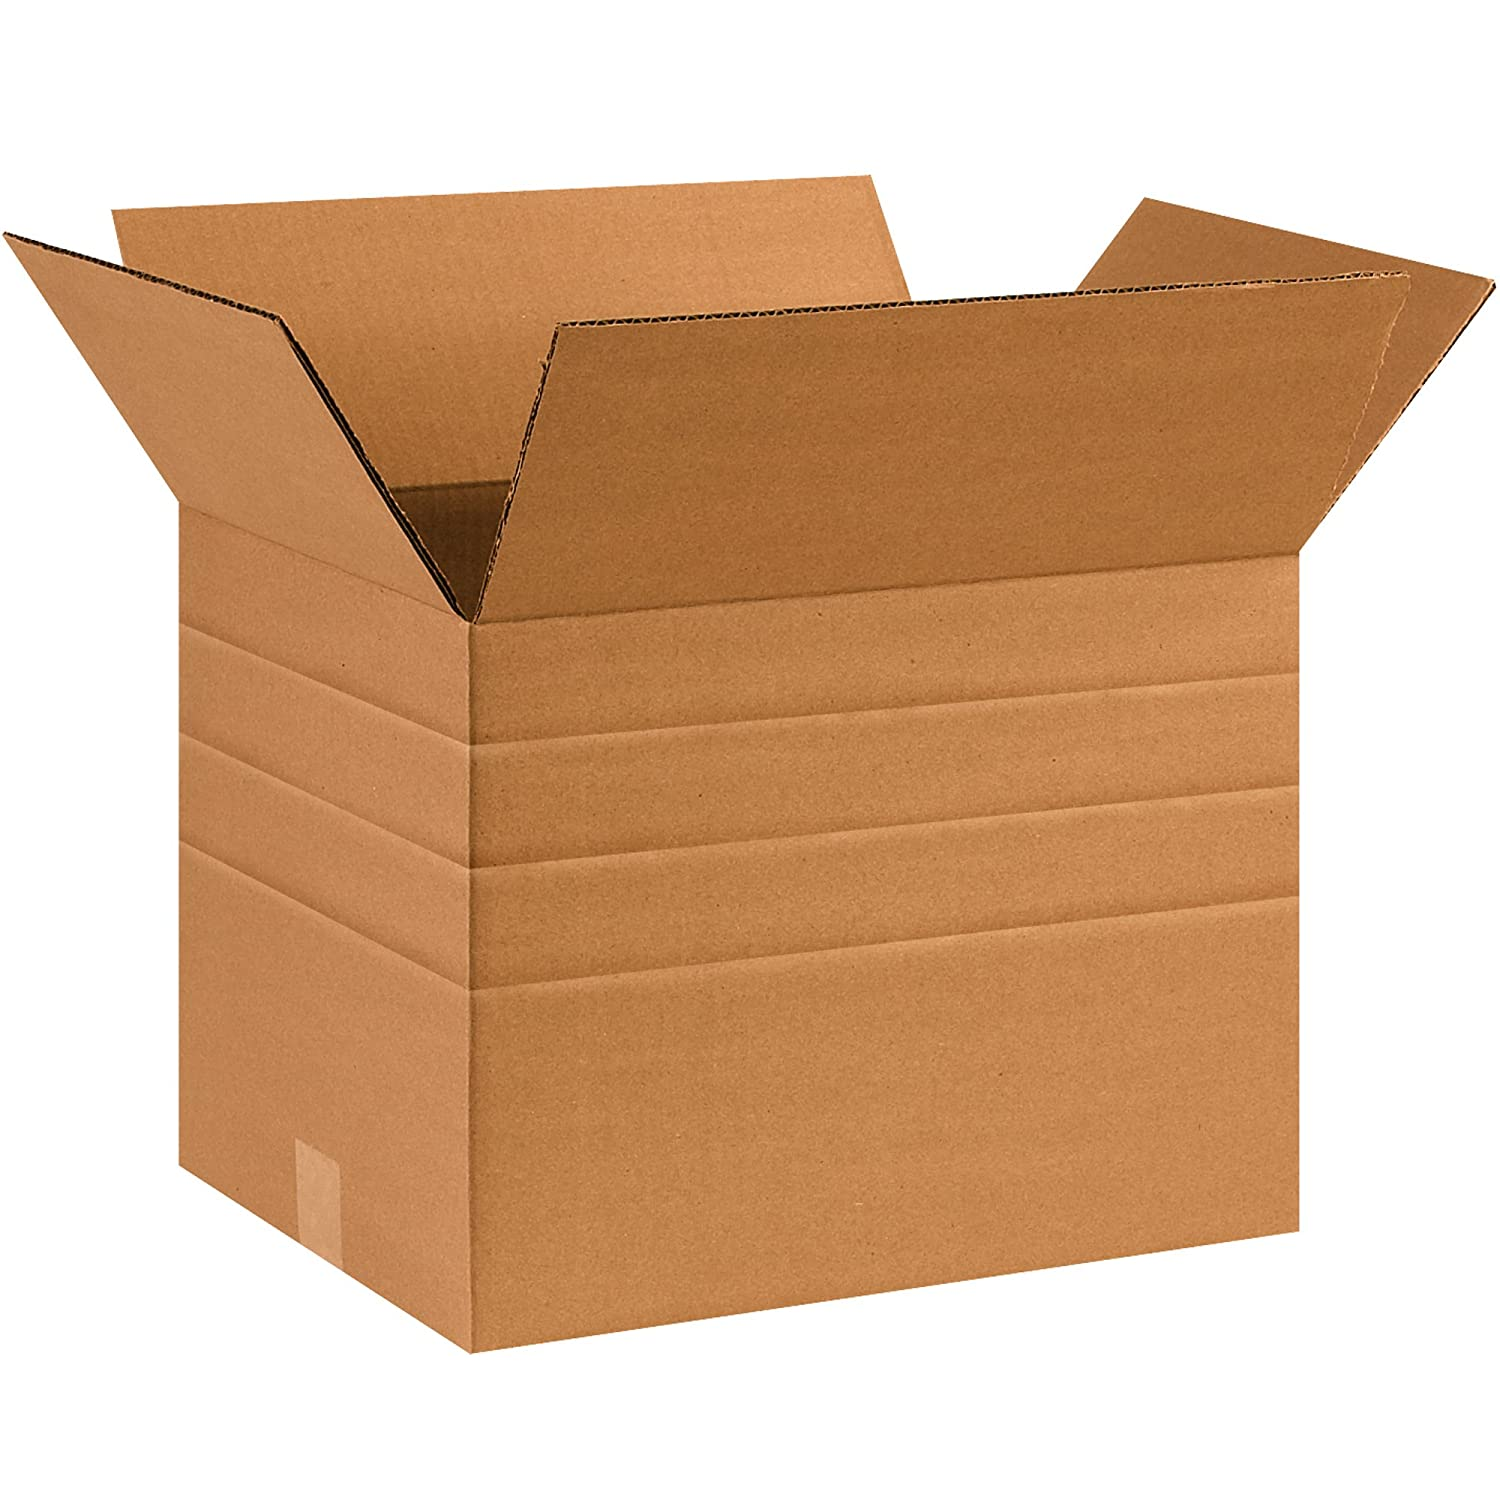 Pack of 15 BOX USA BMD241612 Multi-Depth Corrugated Boxes Kraft 24L x 16W x 12H